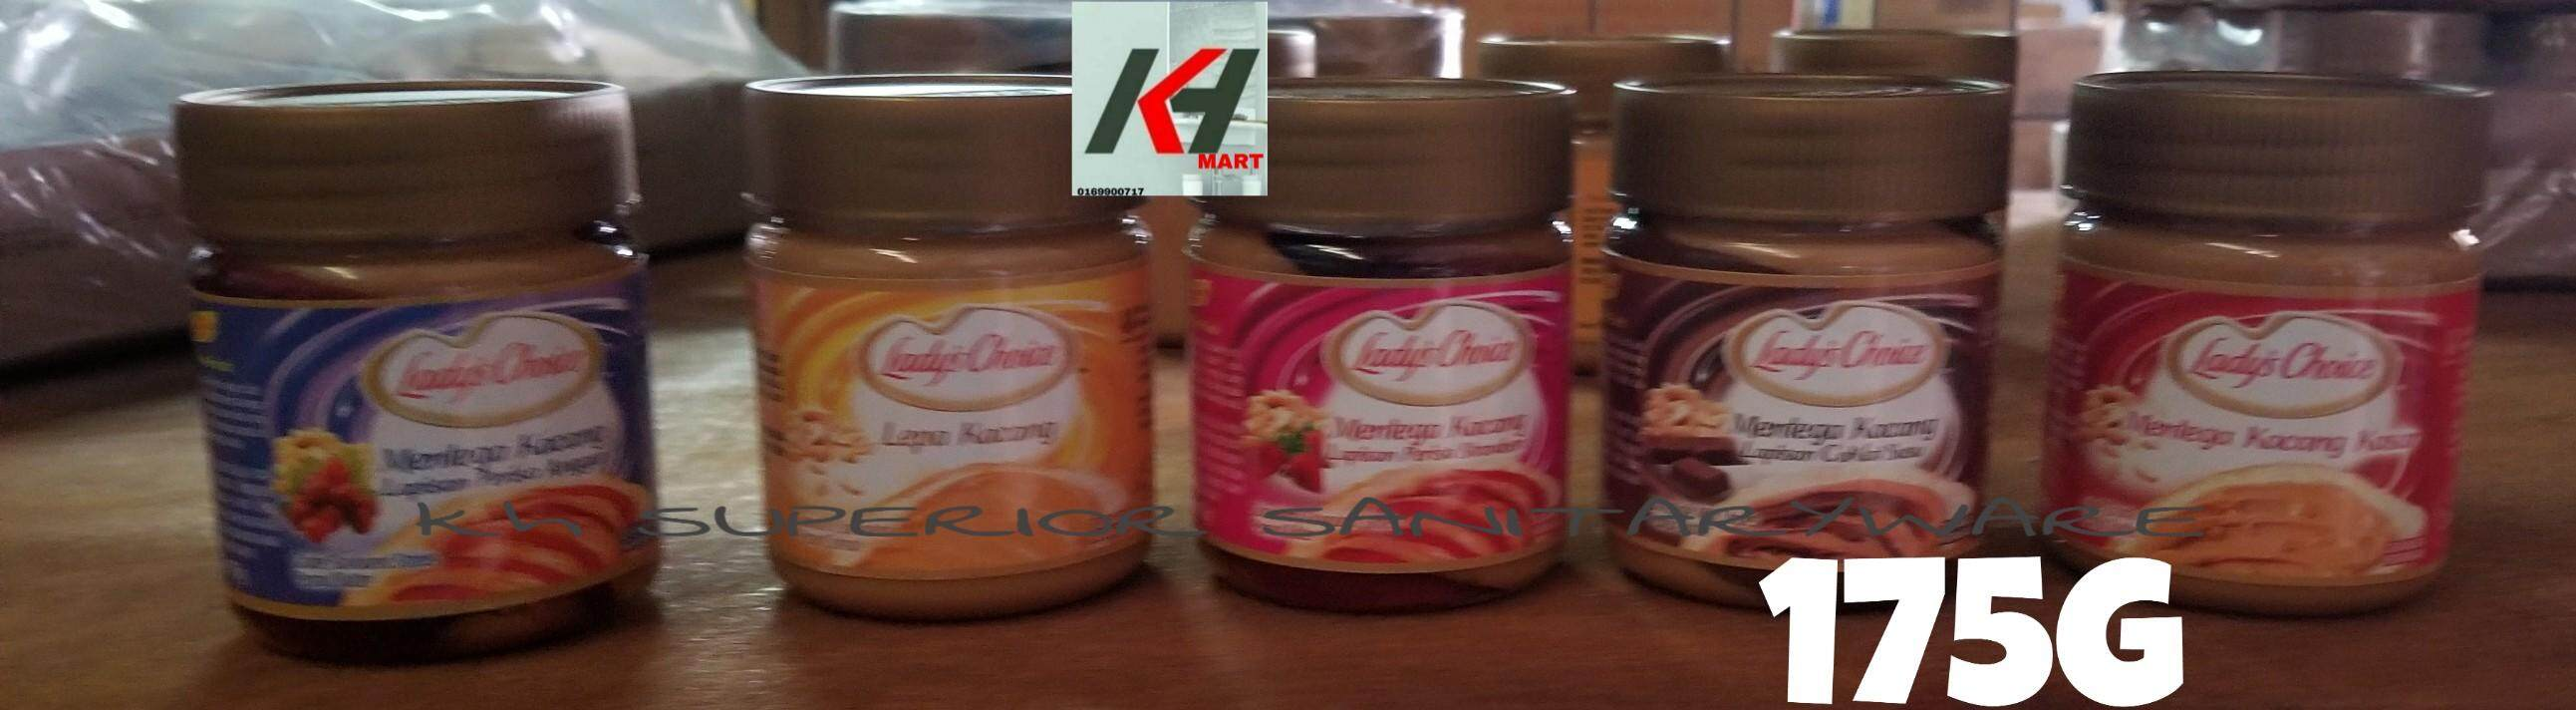 LADY'S CHOICE PEANUT BUTTER (COKLAT SUSU) - 175G READY STOCK